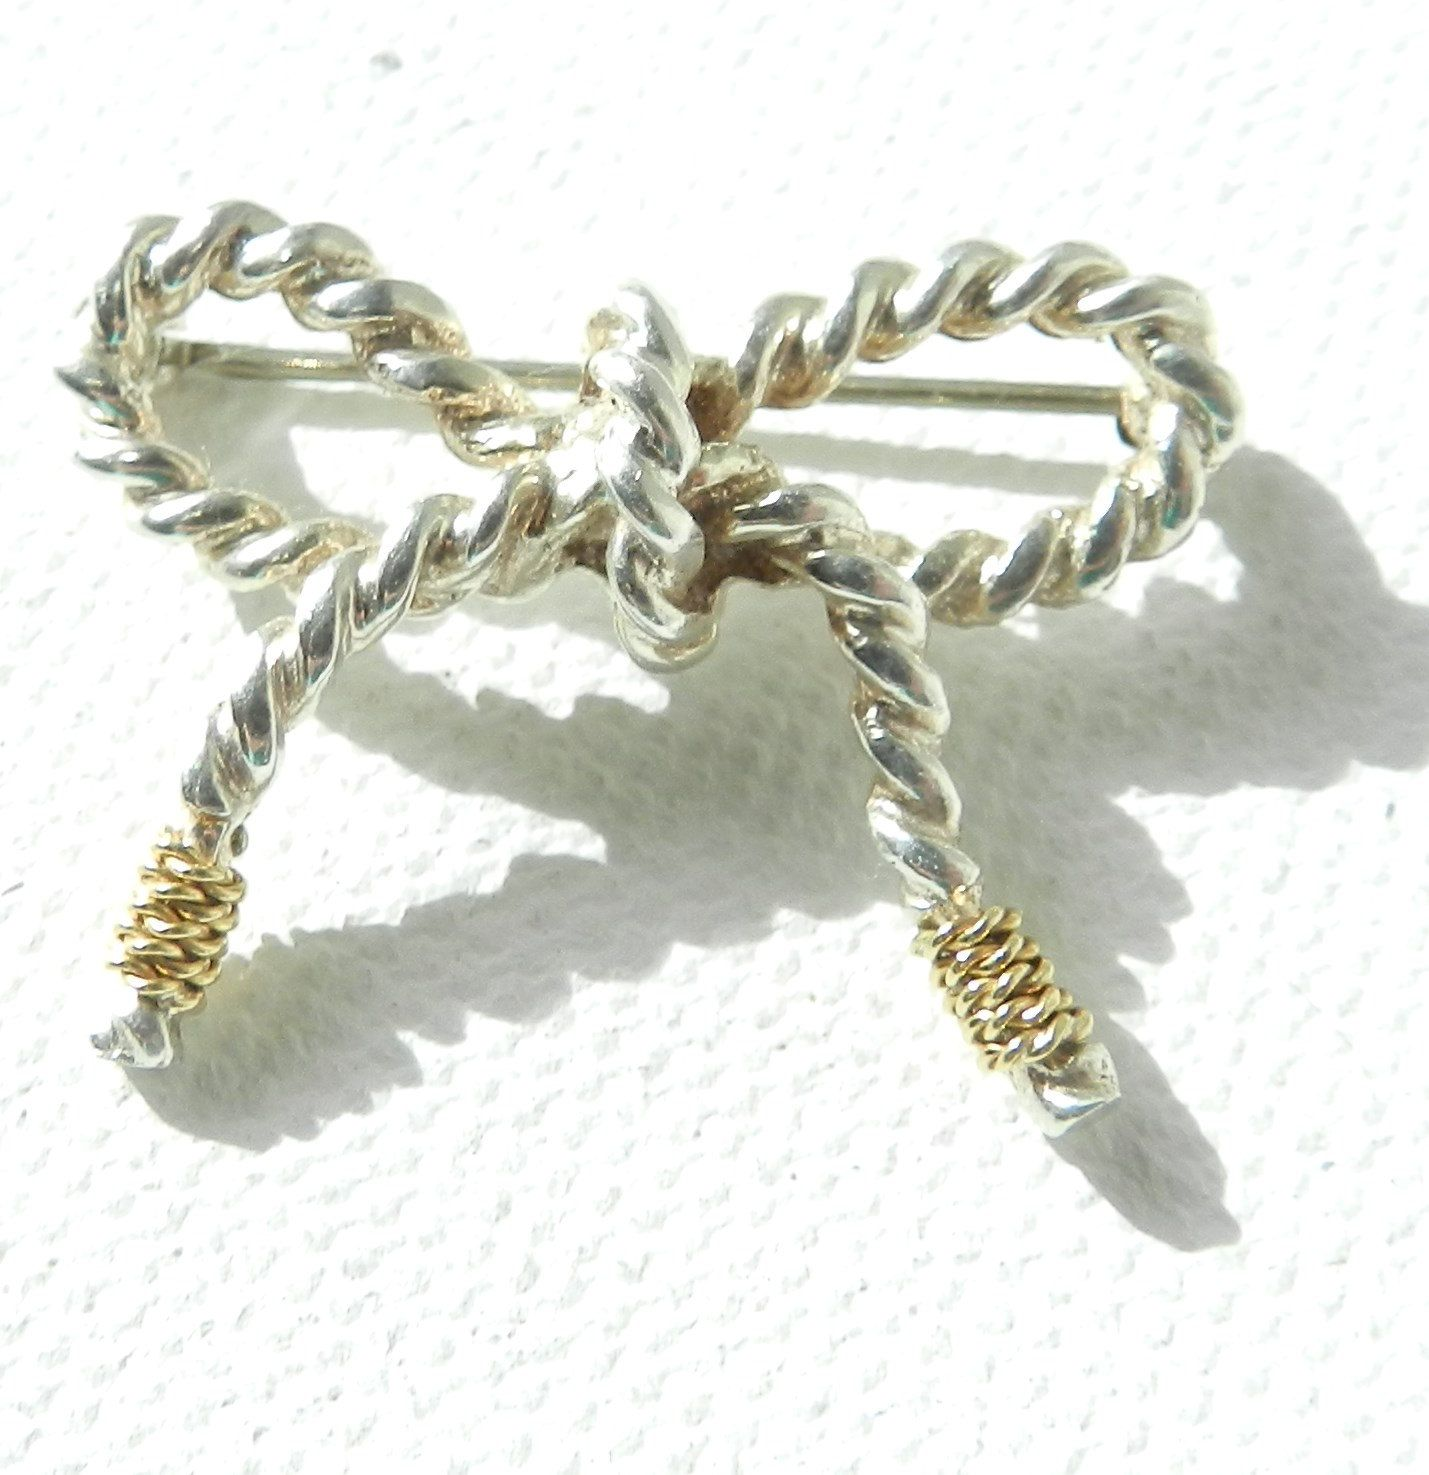 31eb5bc9bd79 AUTHENTIC Tiffany   Co. Bow Brooch 18K and Sterling Silver Twist Rope  Design